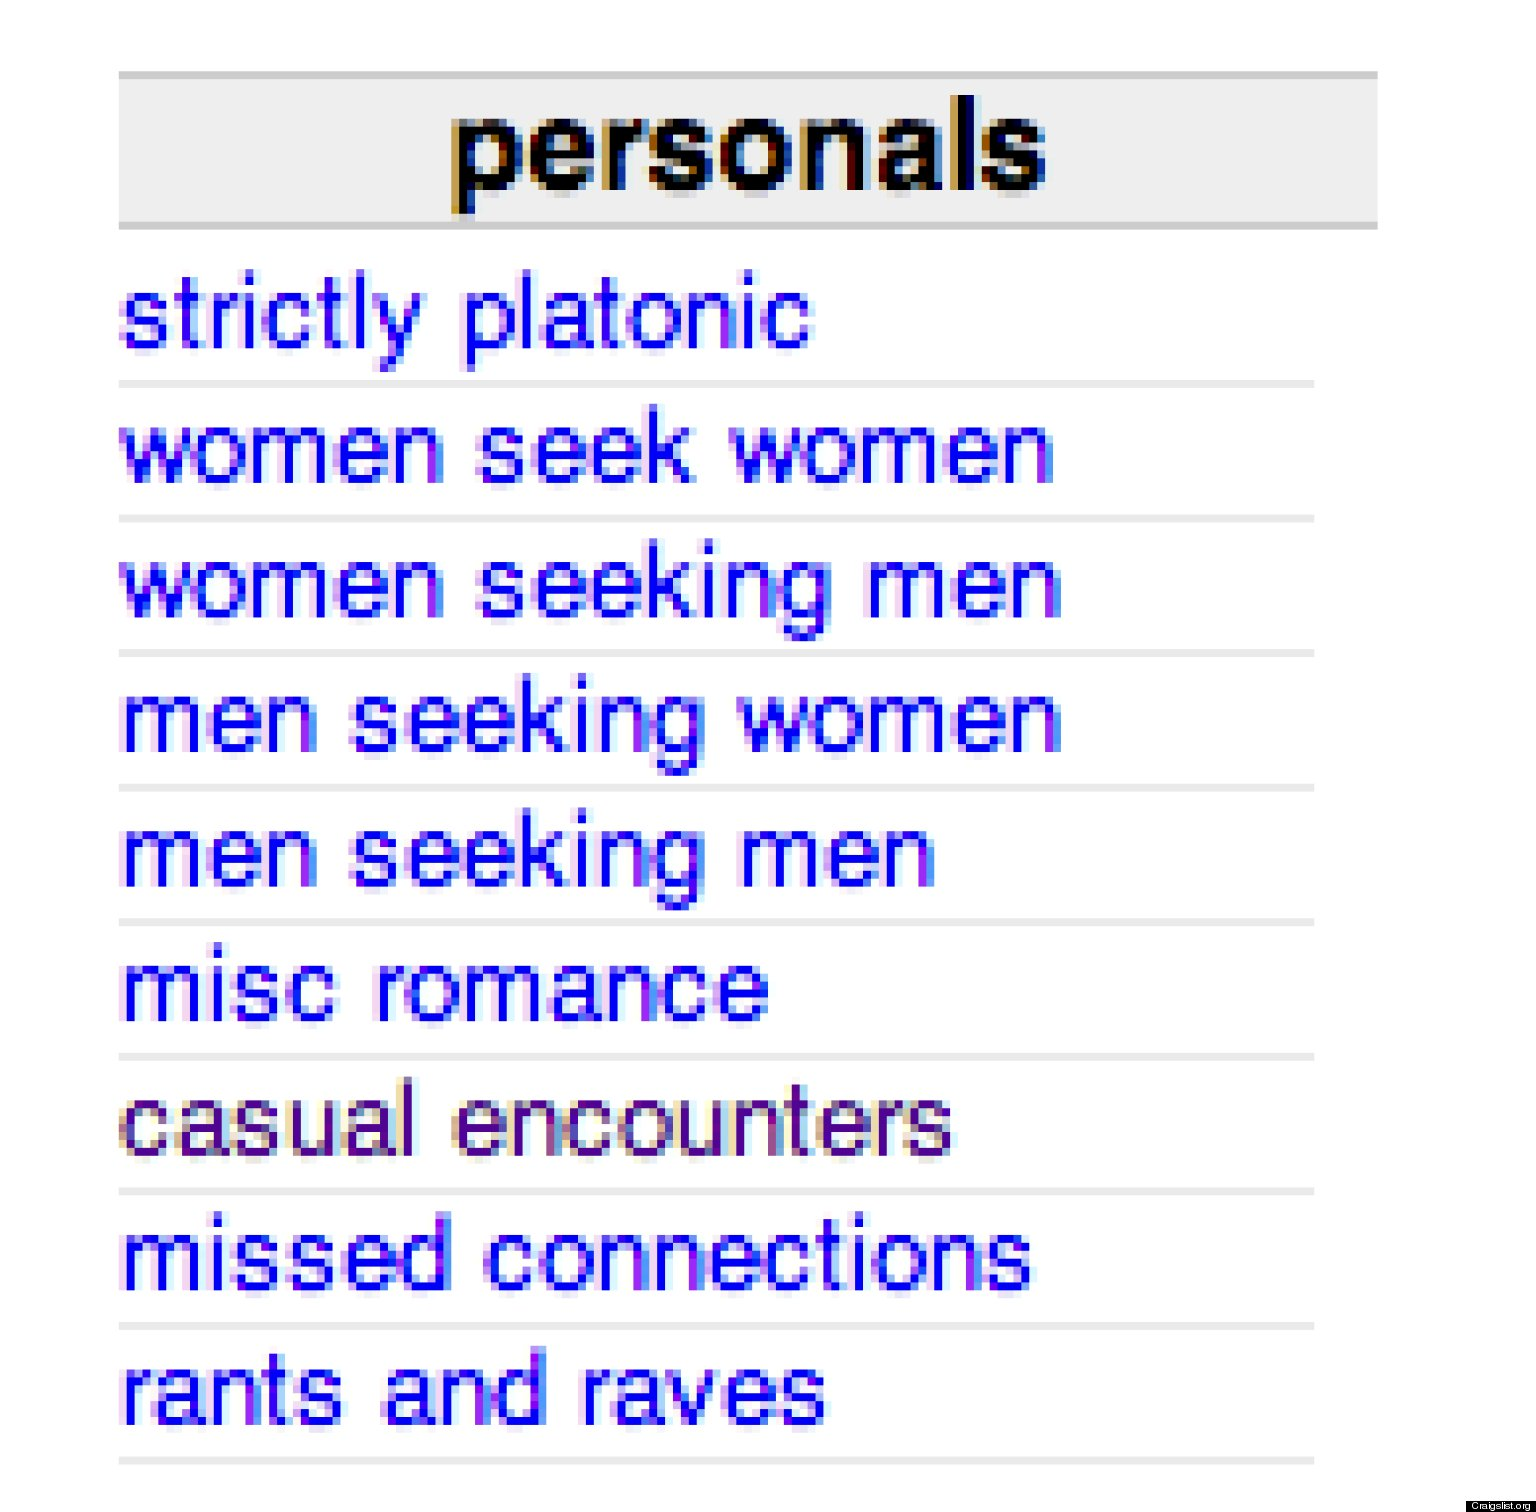 Craigslist south shore personals